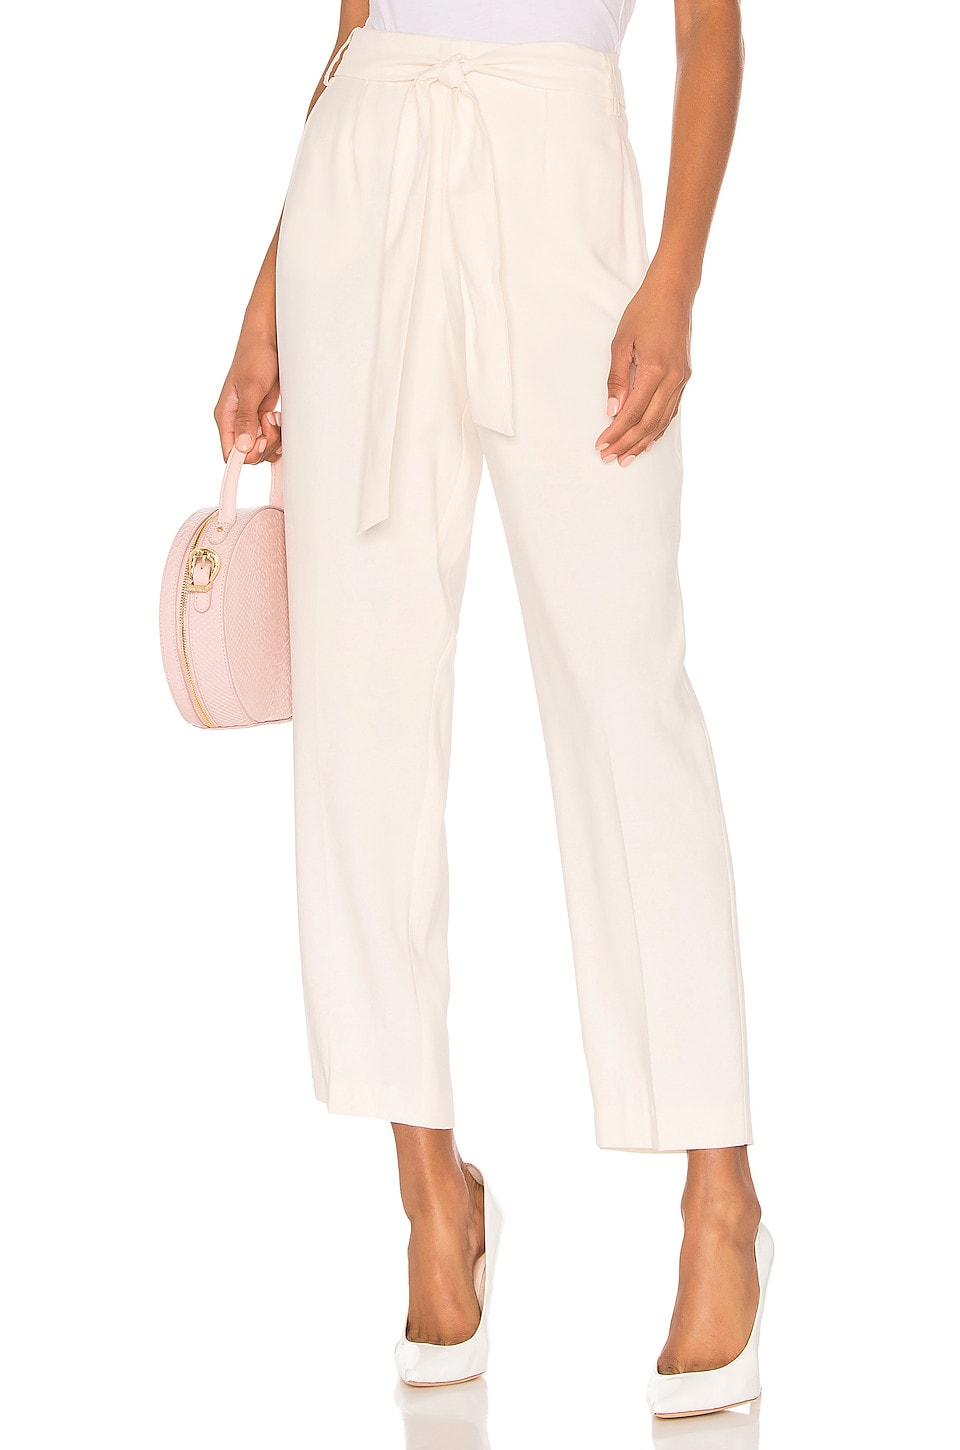 1. STATE Flat Front Tie Waist Slim Pant in White